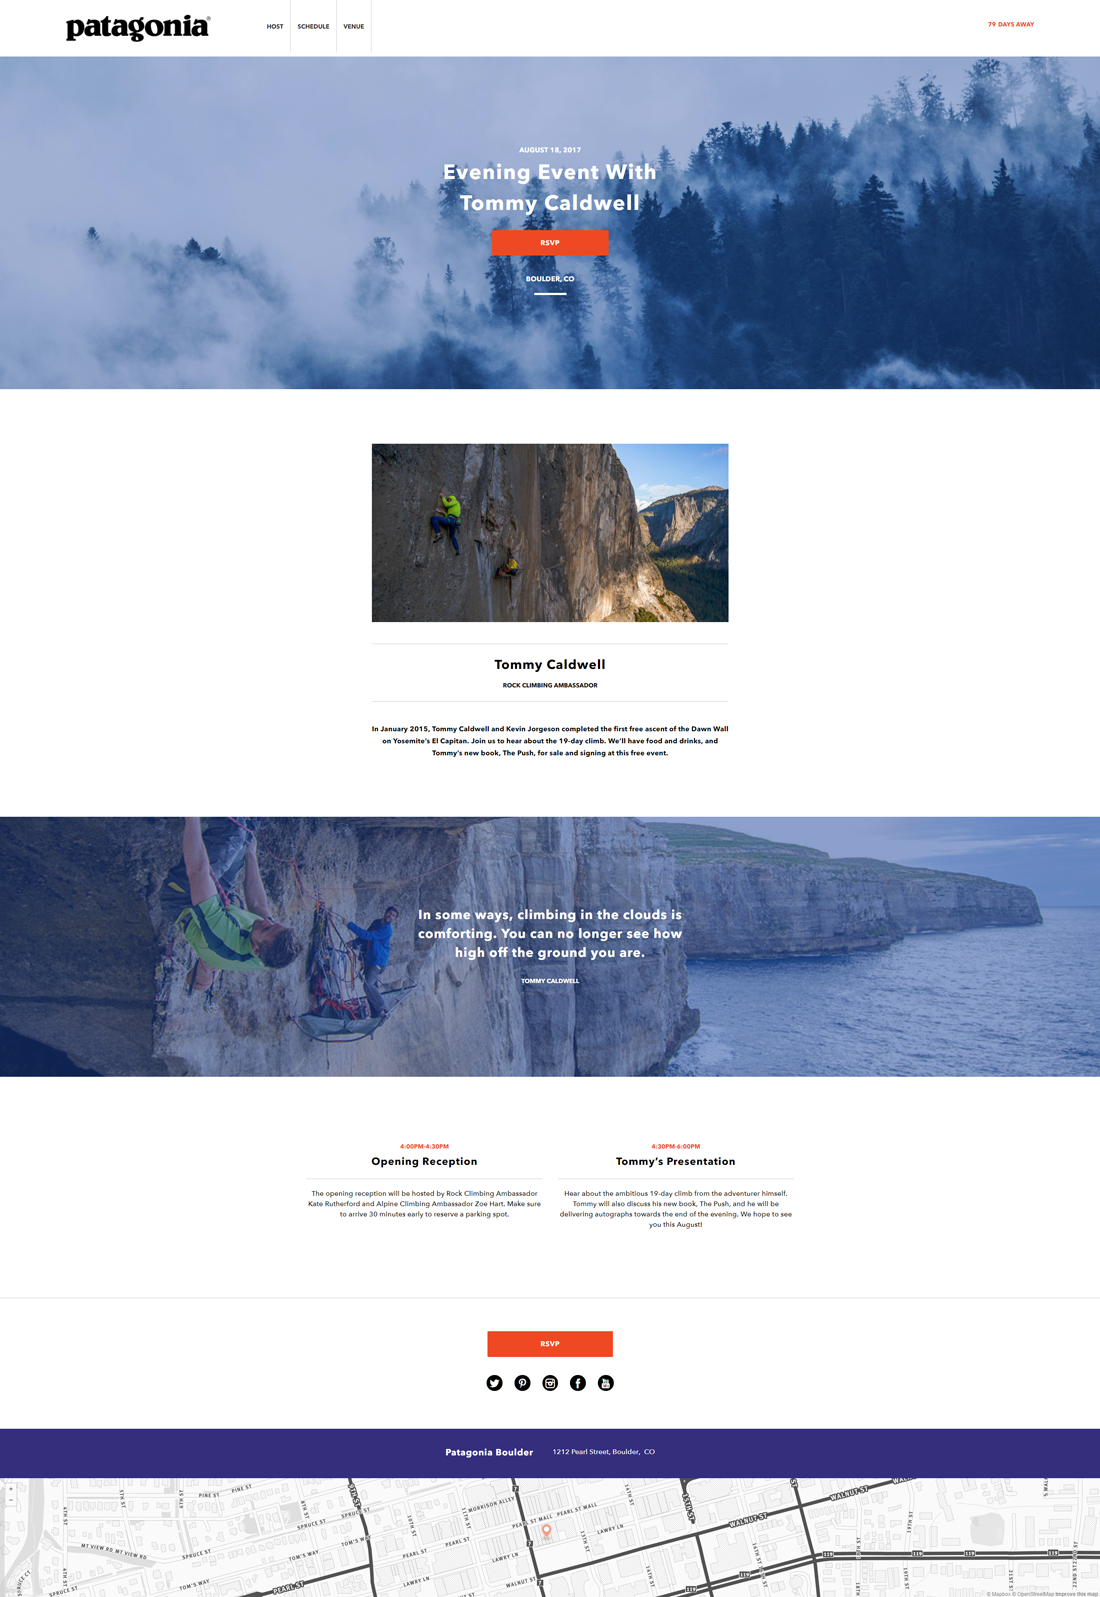 Client: Patagonia on Behance